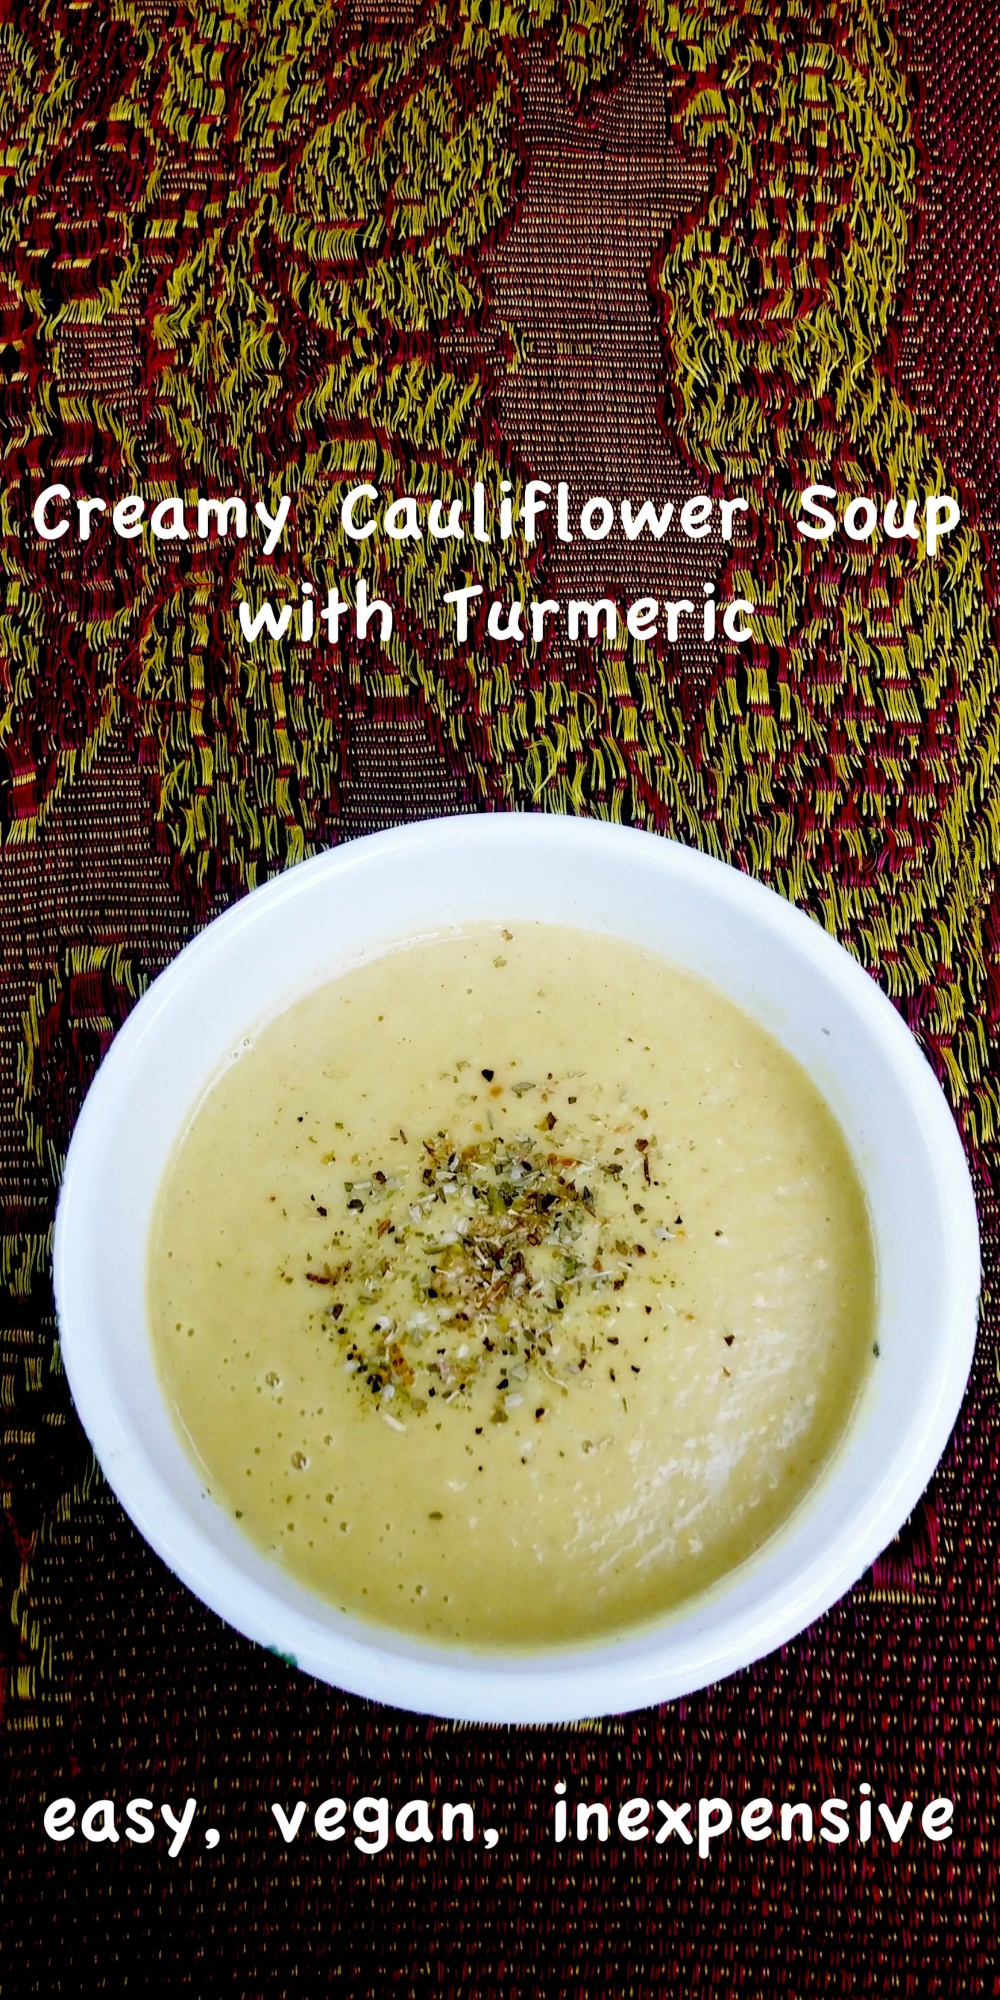 Creamy Cauliflower Soup Fine Dining On Discourse Creamy Cauliflower Soup Cauliflower Soup Creamy Cauliflower